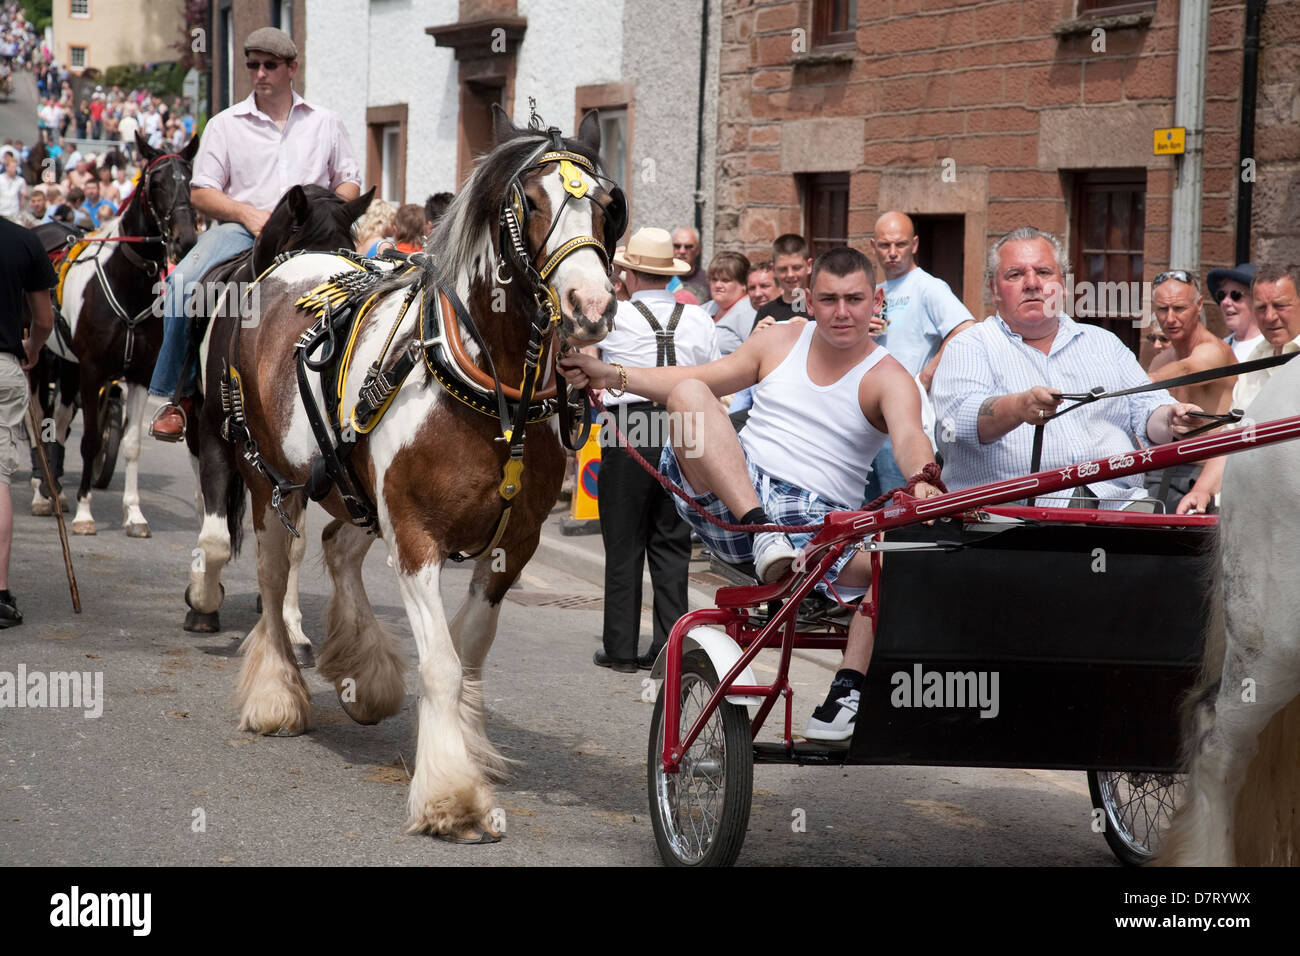 Horses and carts at Appleby Fair, an annual gathering of Gypsy and Traveller communities from UK and Ireland in Stock Photo